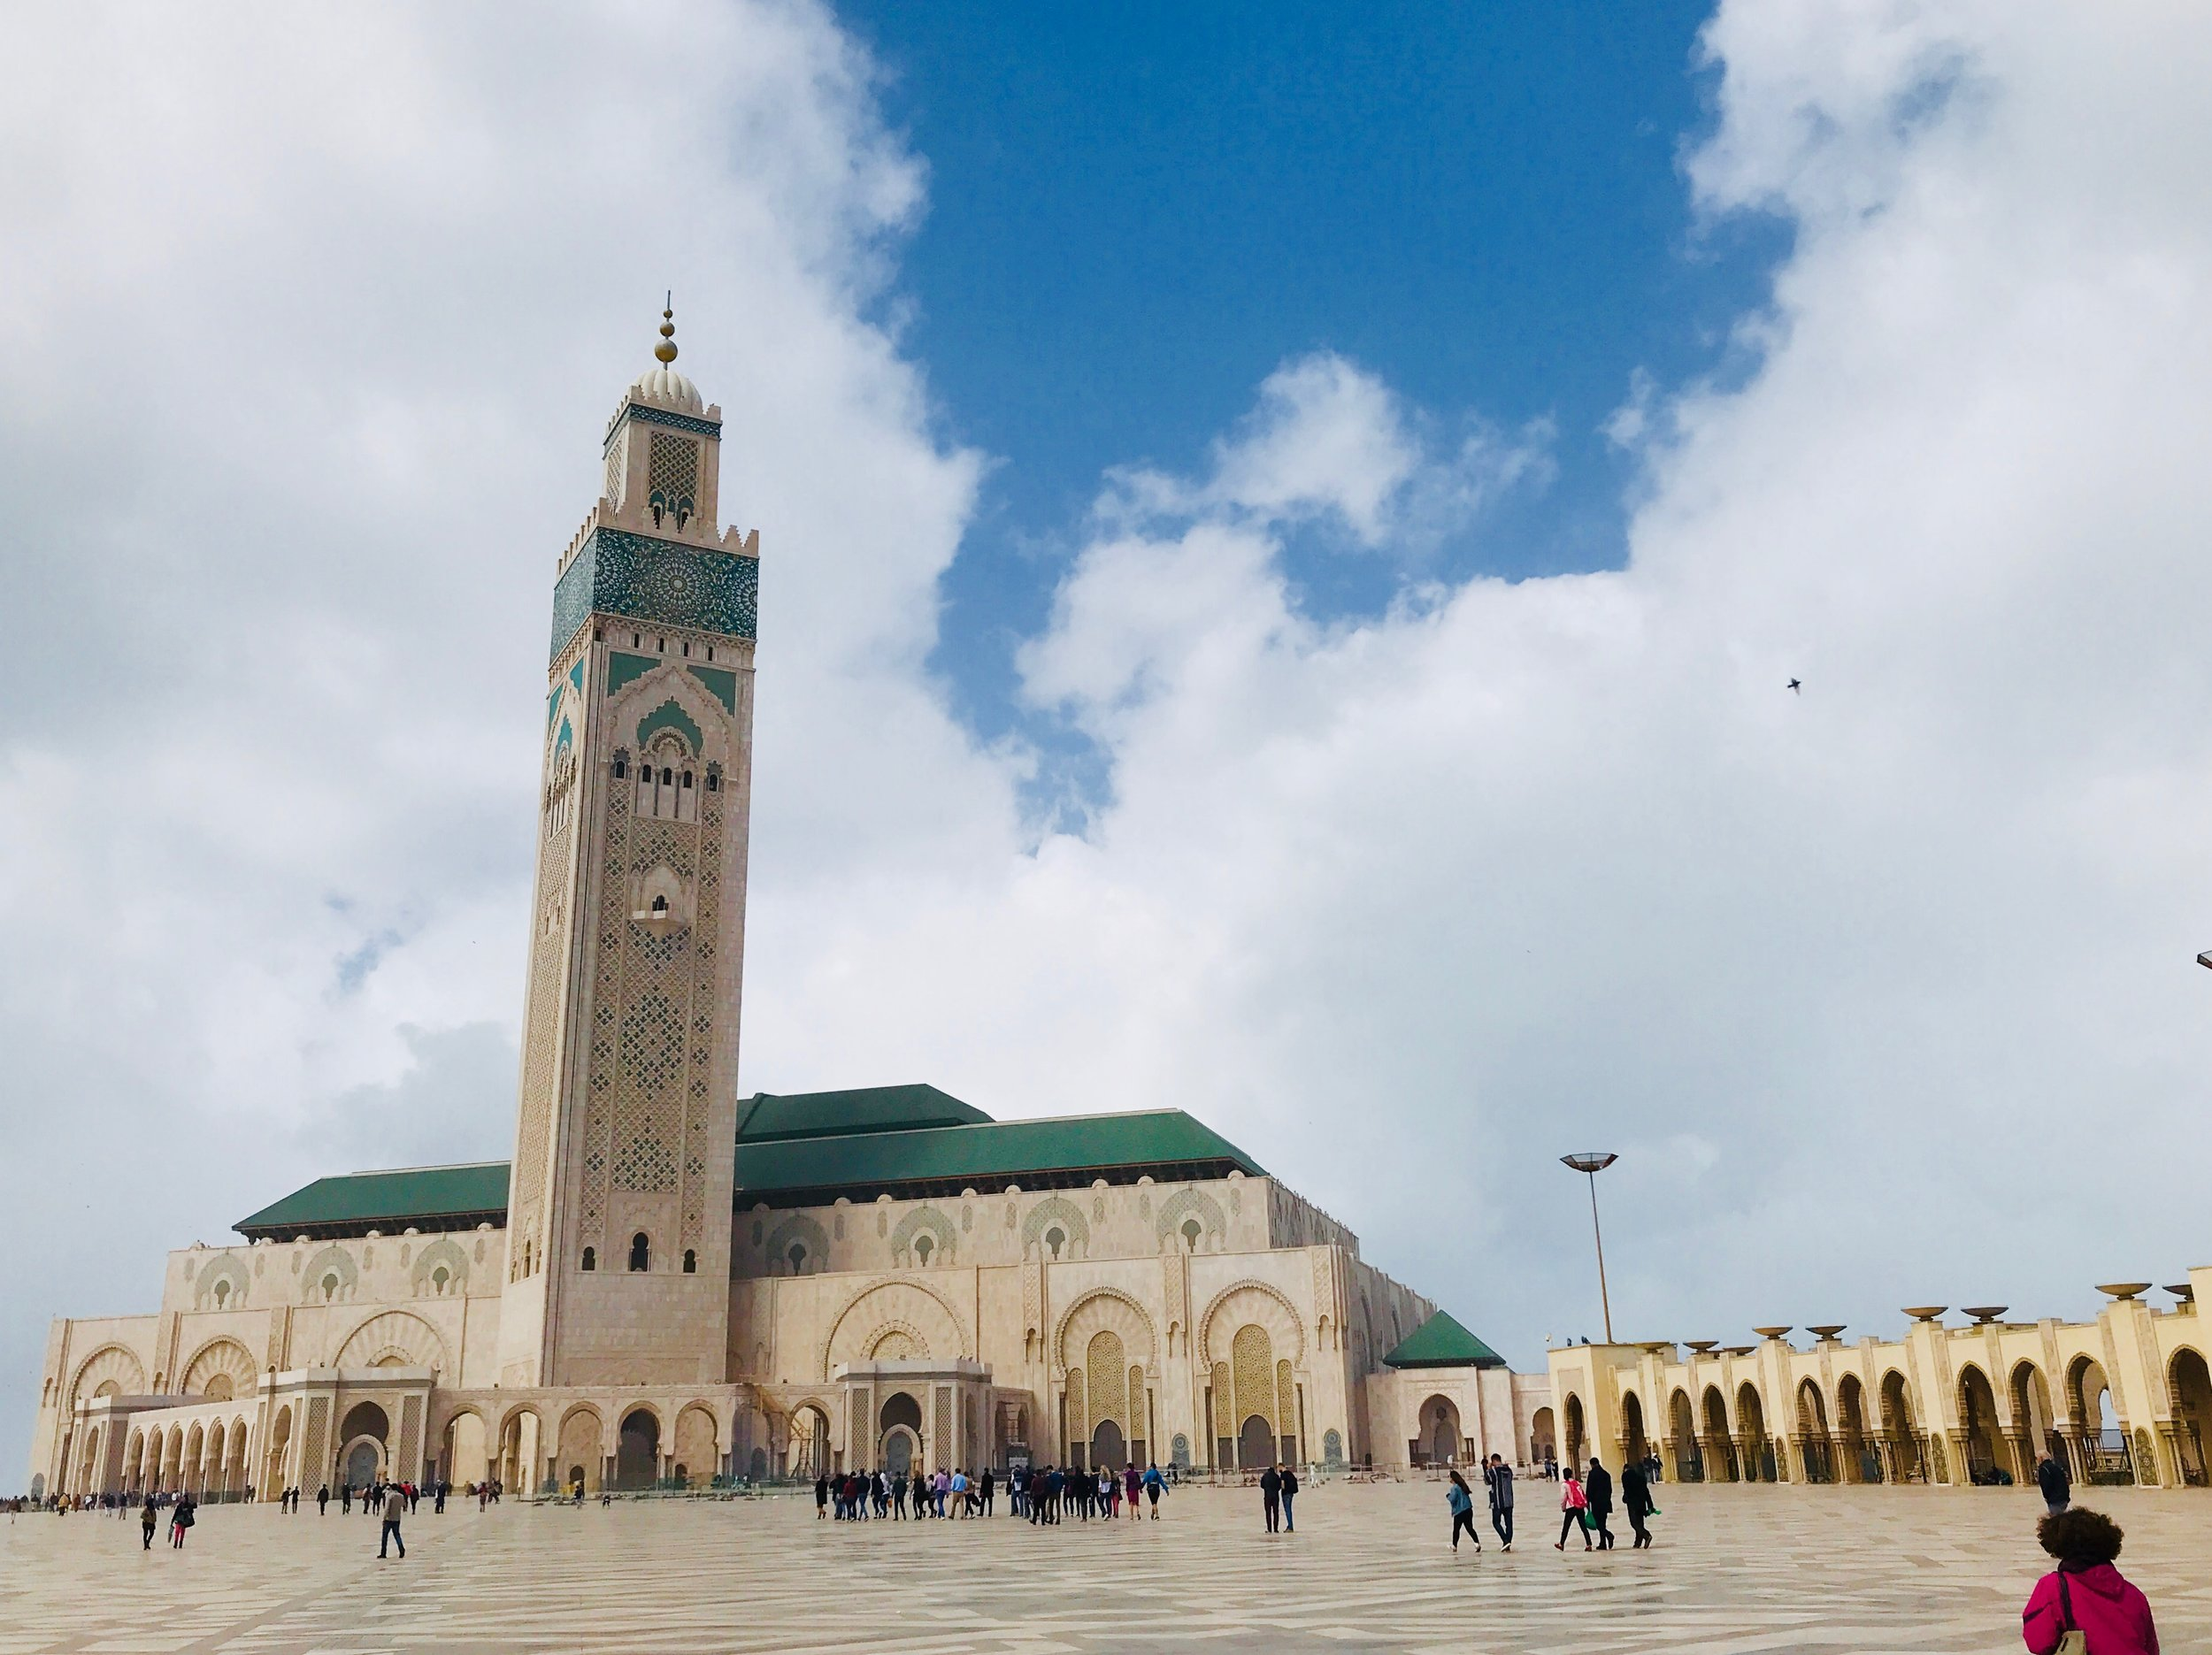 The Minaret of Casablanca - Lily Brown